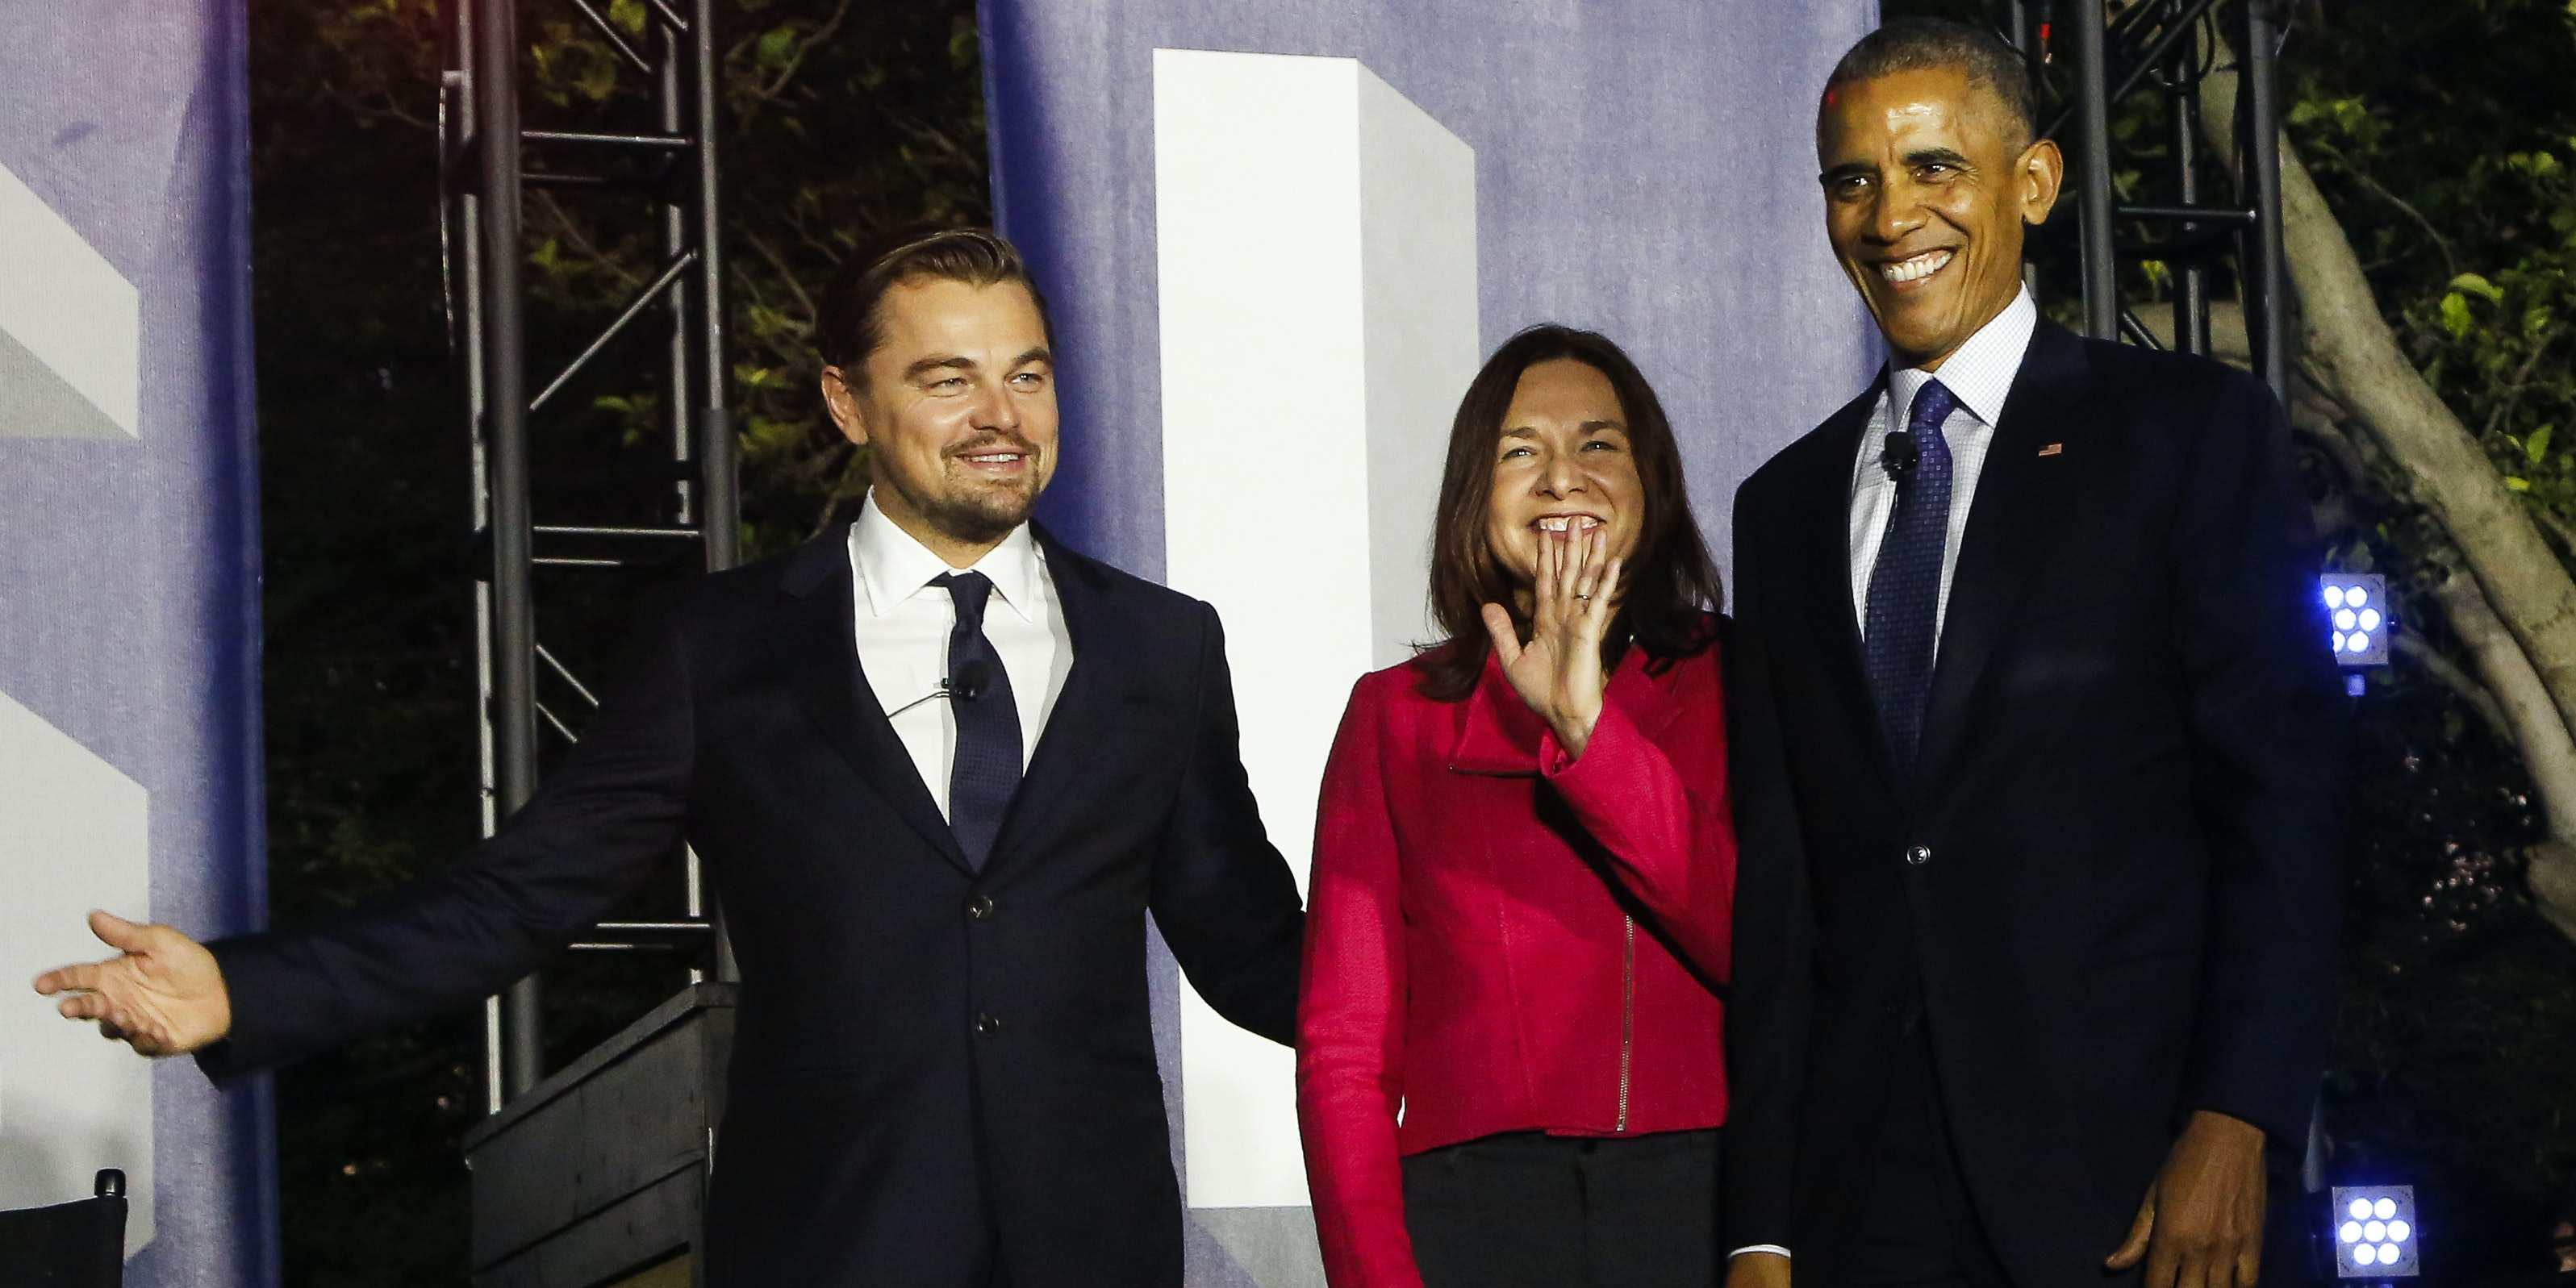 President Barack Obama, Leonardo DiCaprio and Dr. Katharine Hayhoe arrive at a panel discussion on climate change as part of the White House South by South Lawn event, in the South Lawn of the White House on October 3, 2016 in Washington DC.